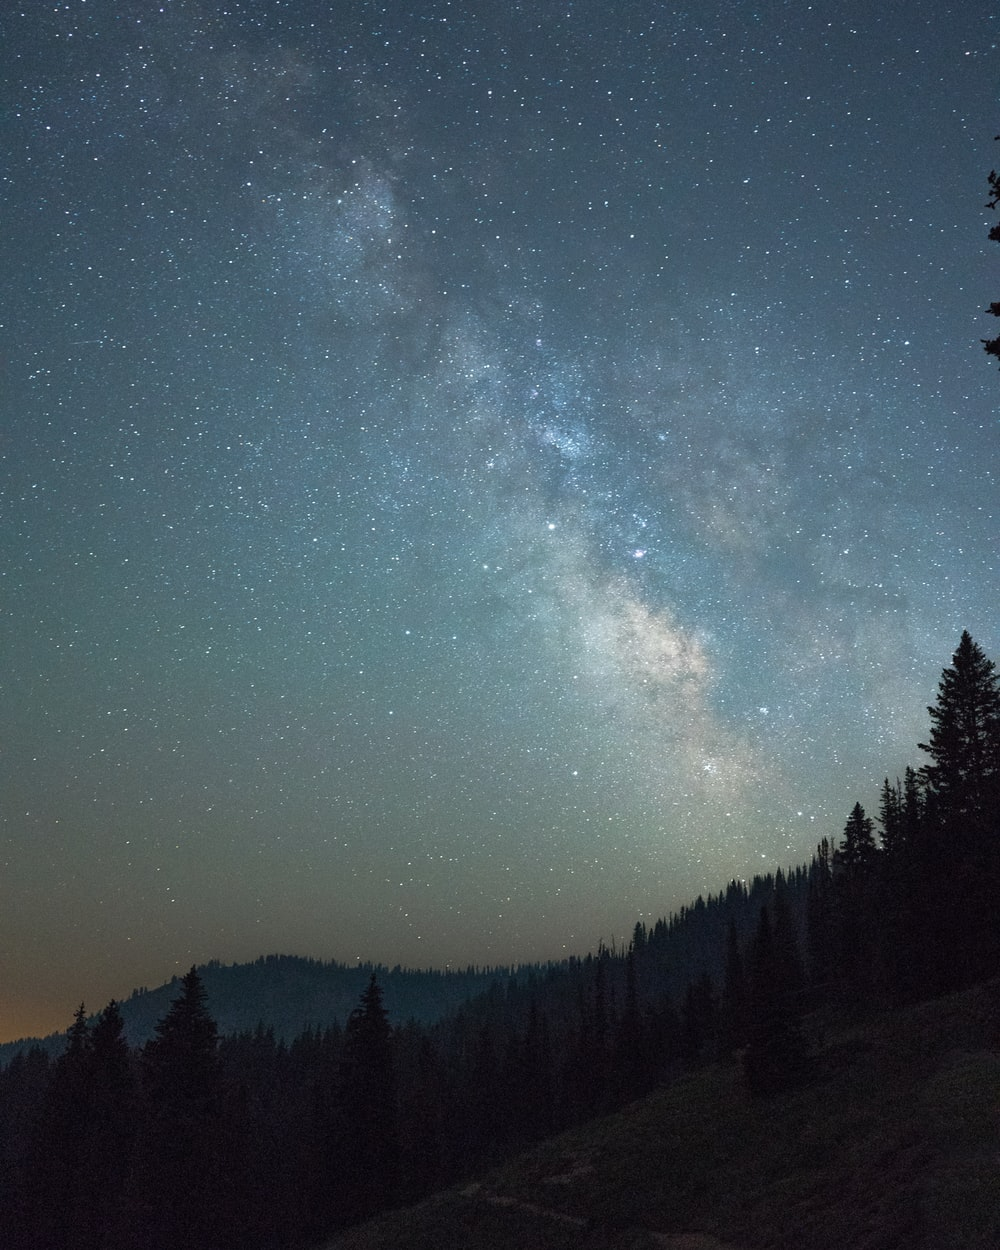 low-angle photography of milky way during nighttime